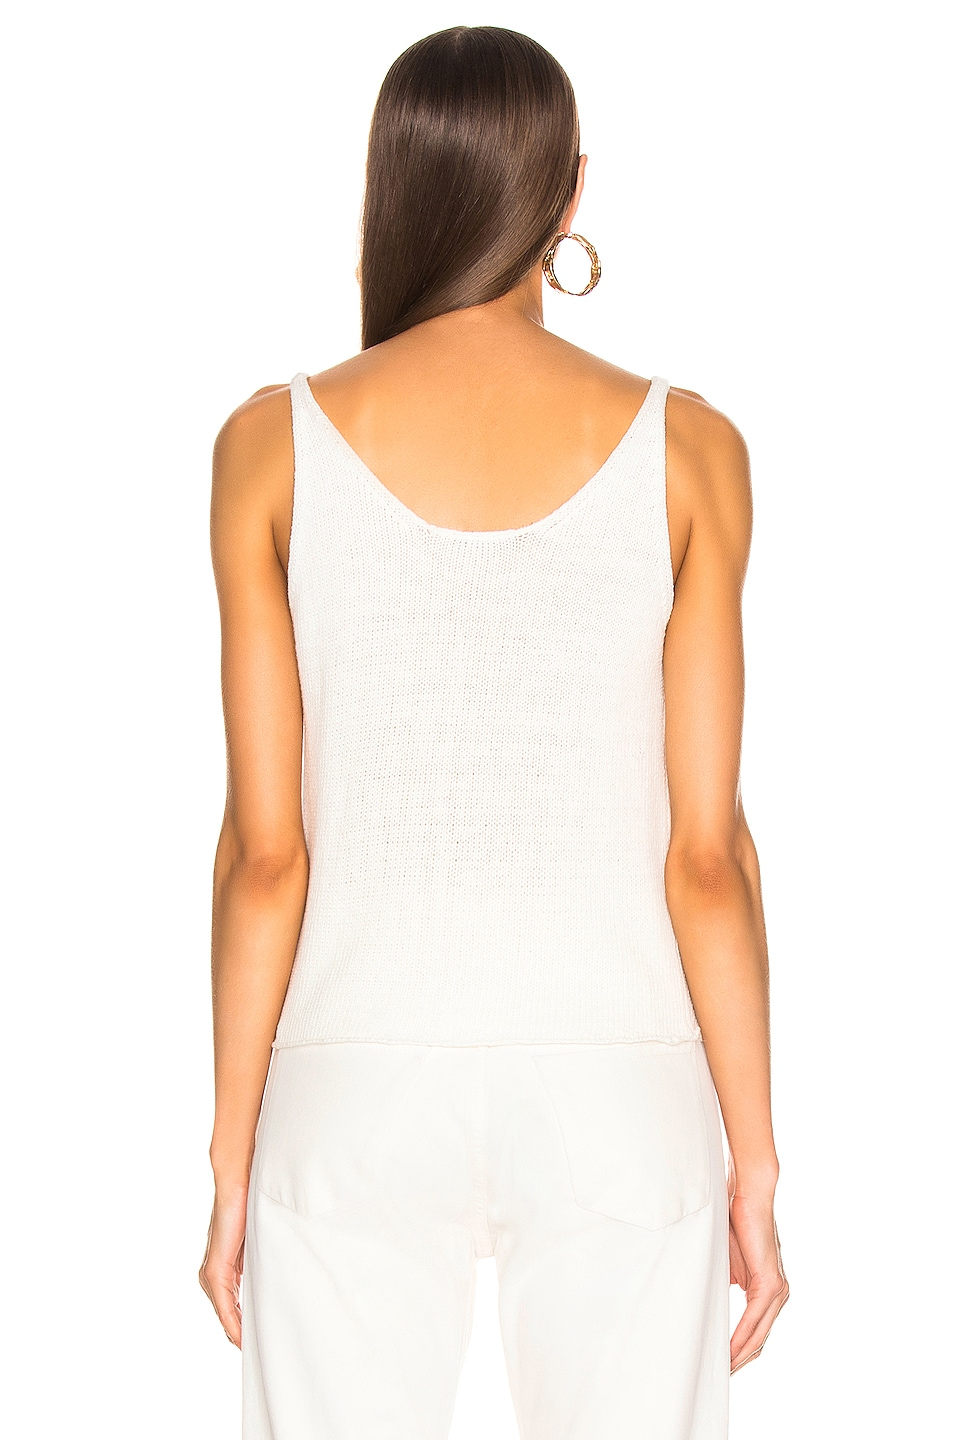 Image 3 of The Range Storm Deconstructed Knit Tank Top in White